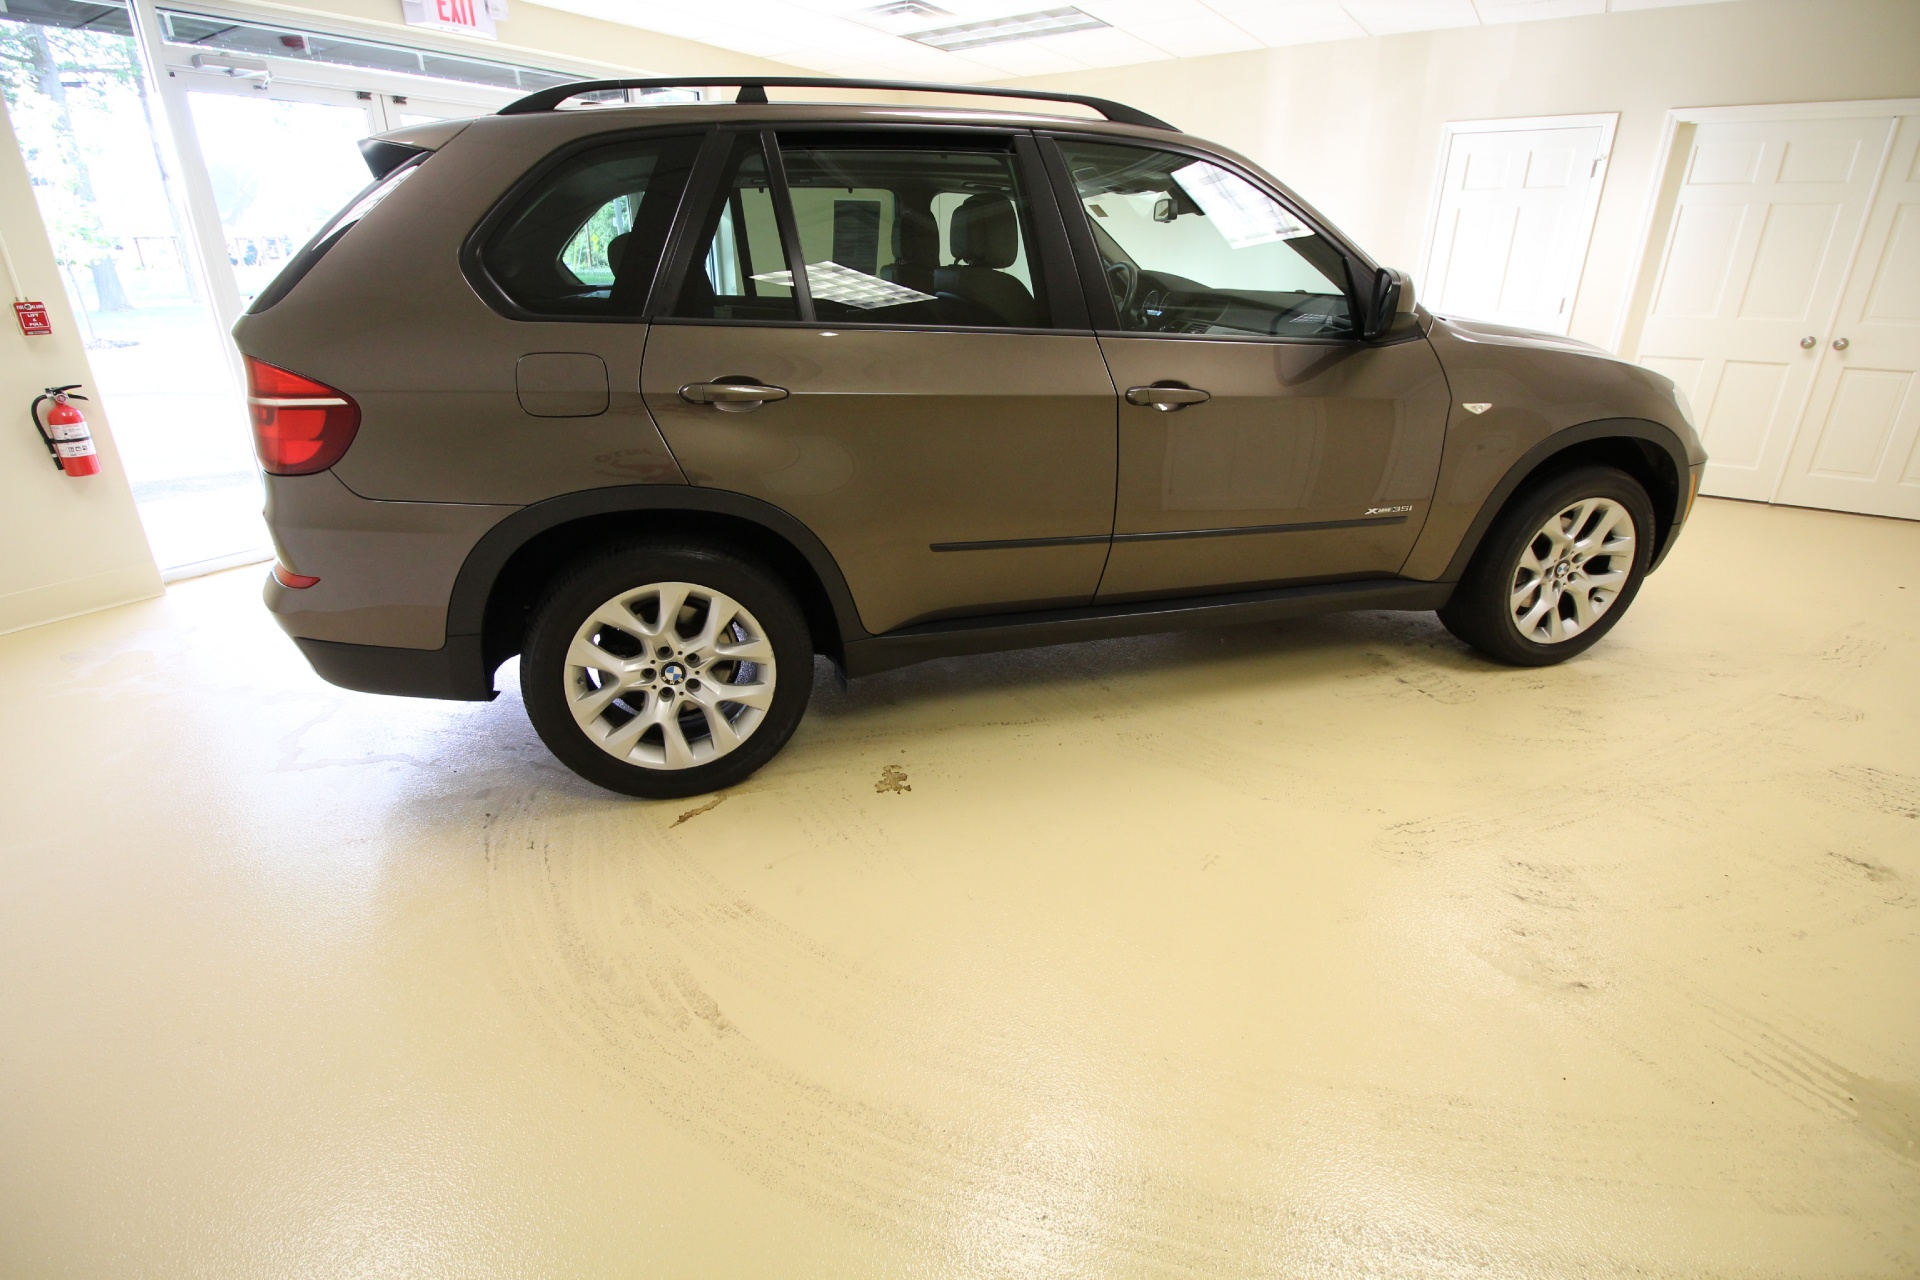 2014 Bmw X5 With 3rd Row Seating Autos Magazine Autos